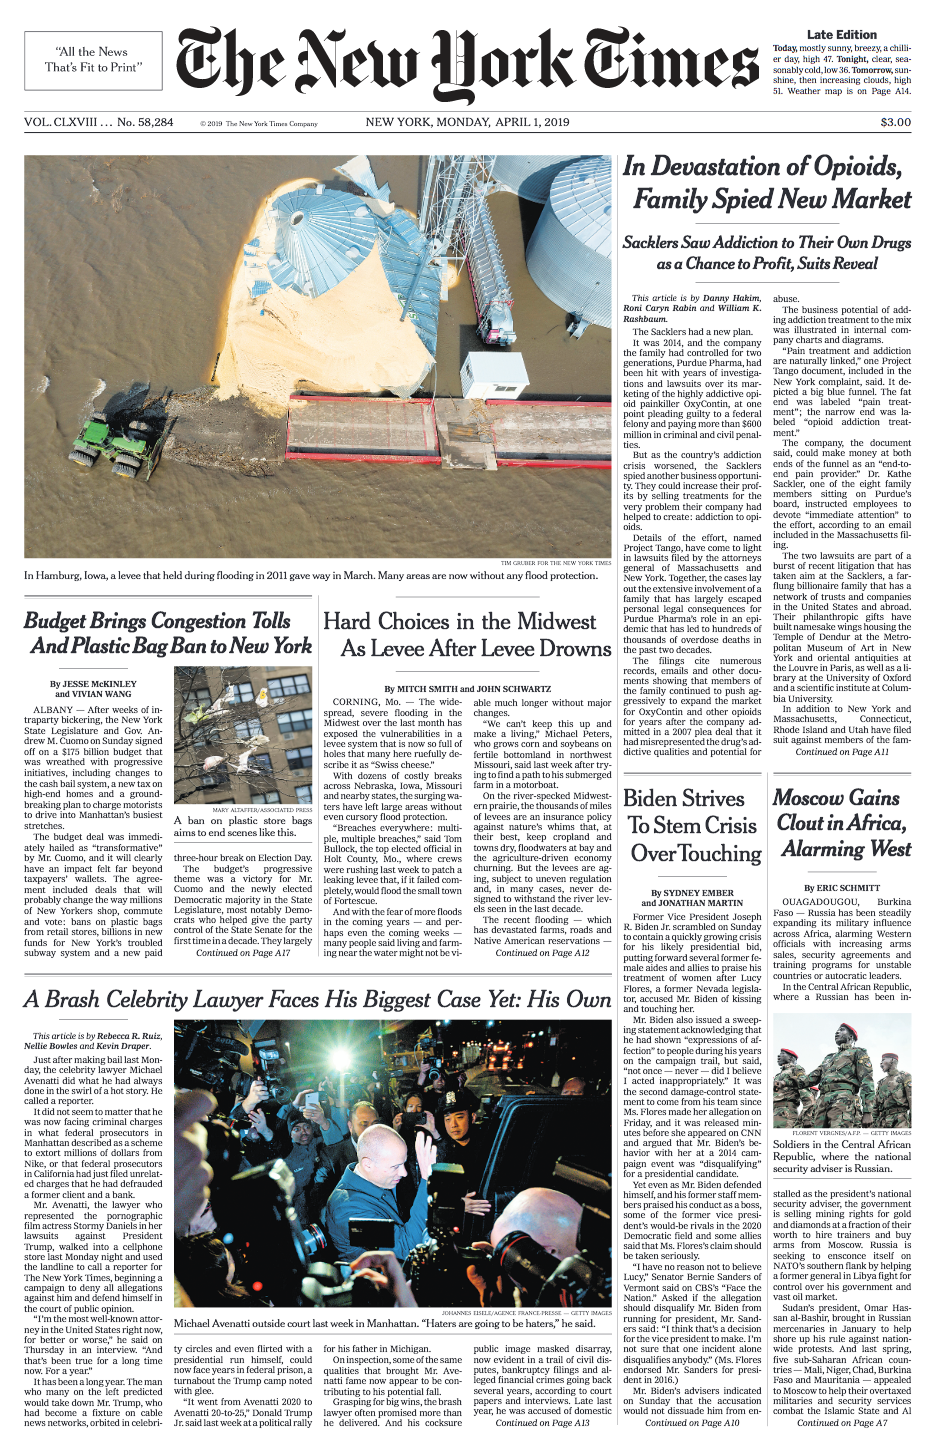 NYT_FrontPage_040119.png